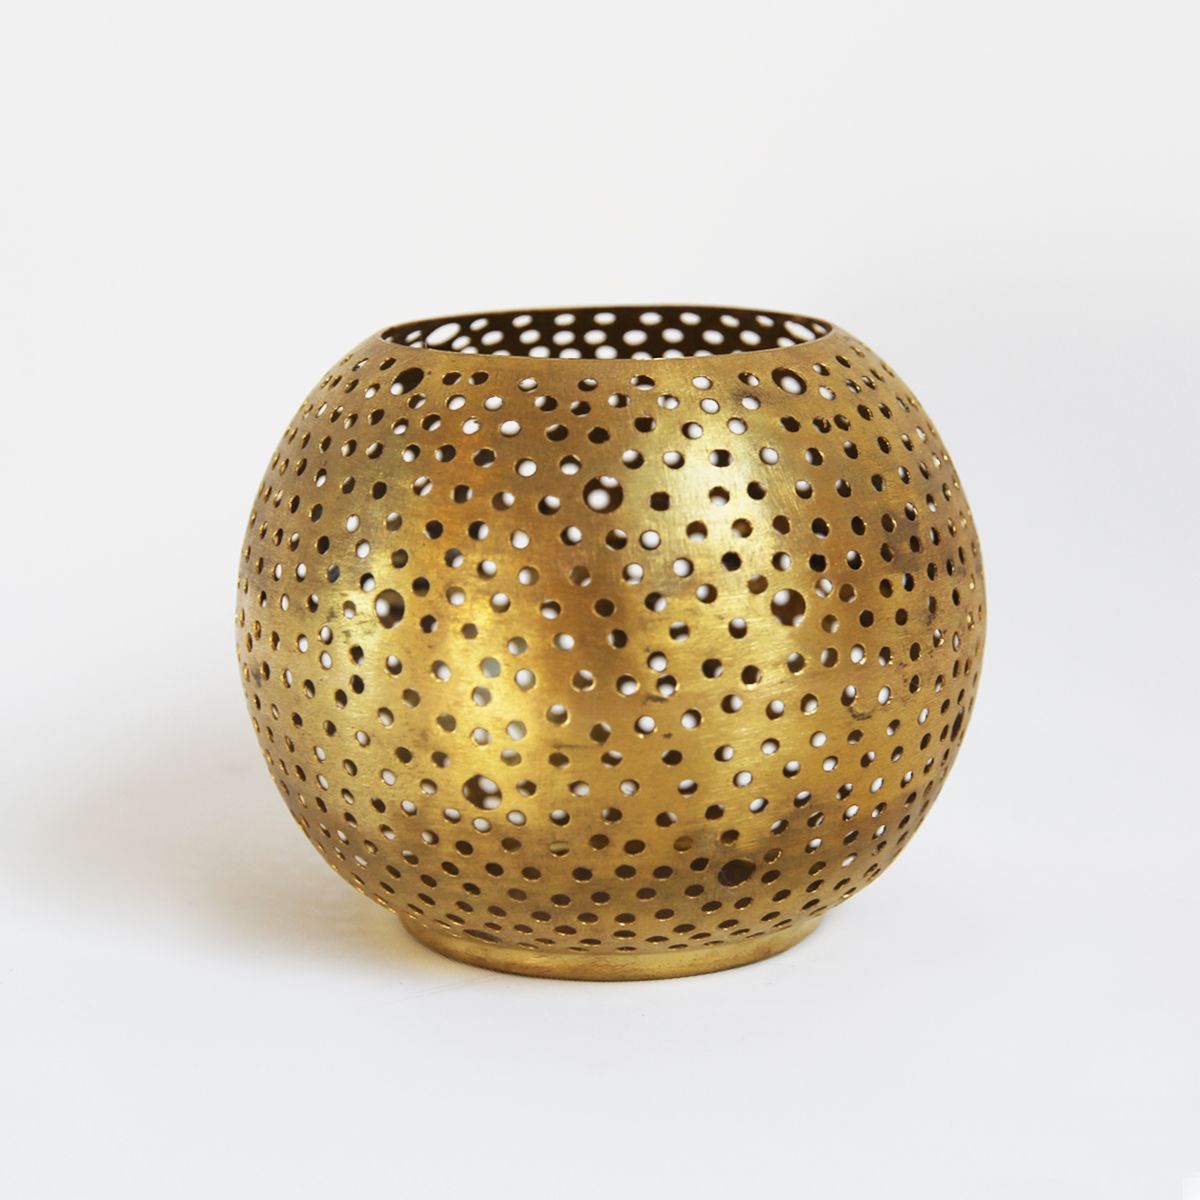 Br Ball Candle Holder Tea Light With Perforated Holes Makes An Elegant Effect When Lit A Gold Colored Finish